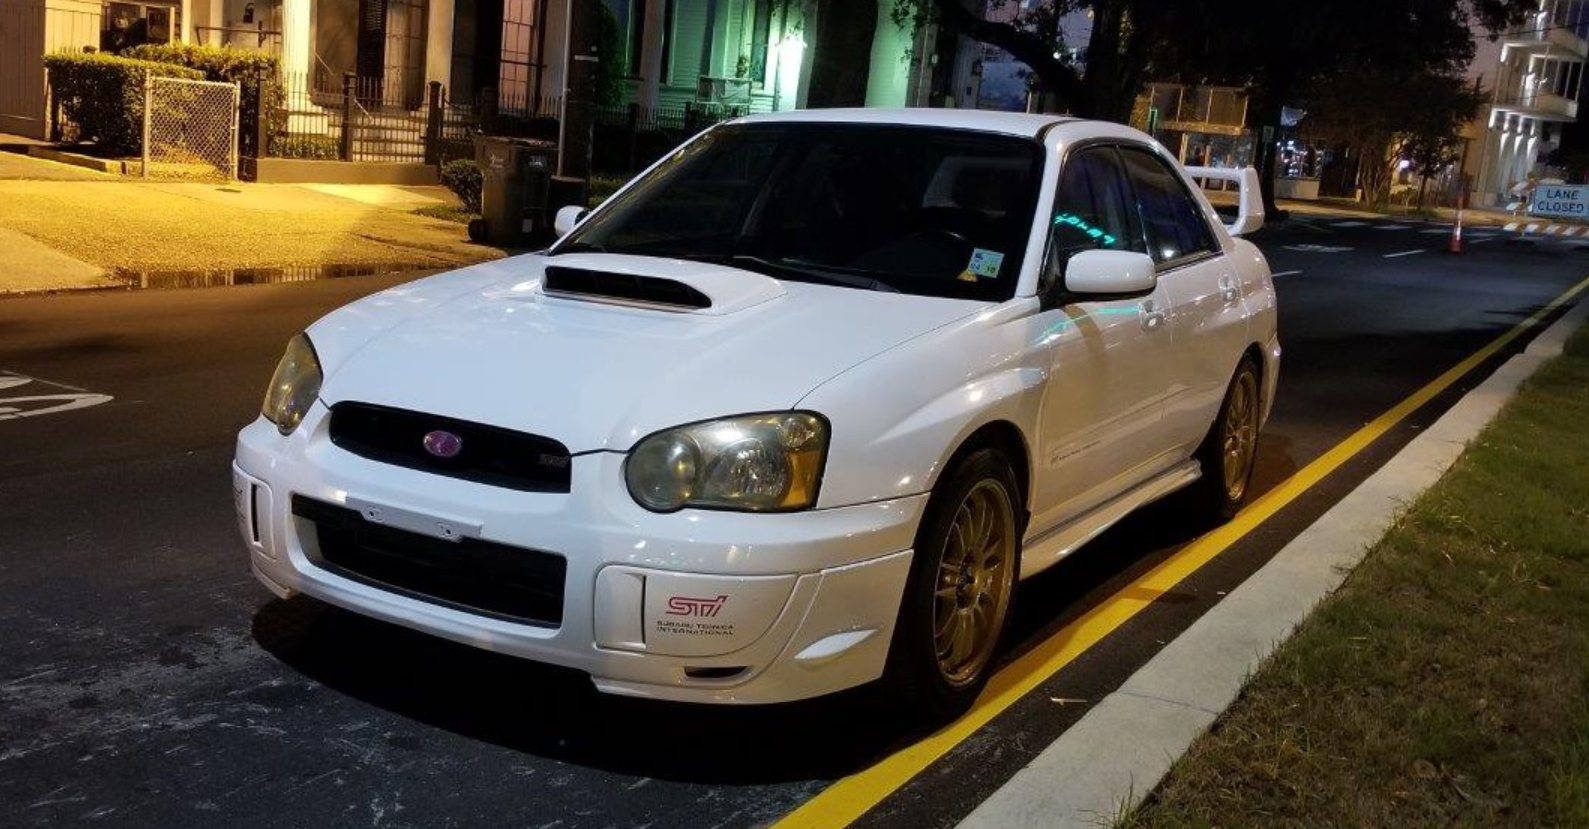 2004 AW STi, built motor, fair condition-screenshot_20190422-152922_gallery_1555965246149-jpg